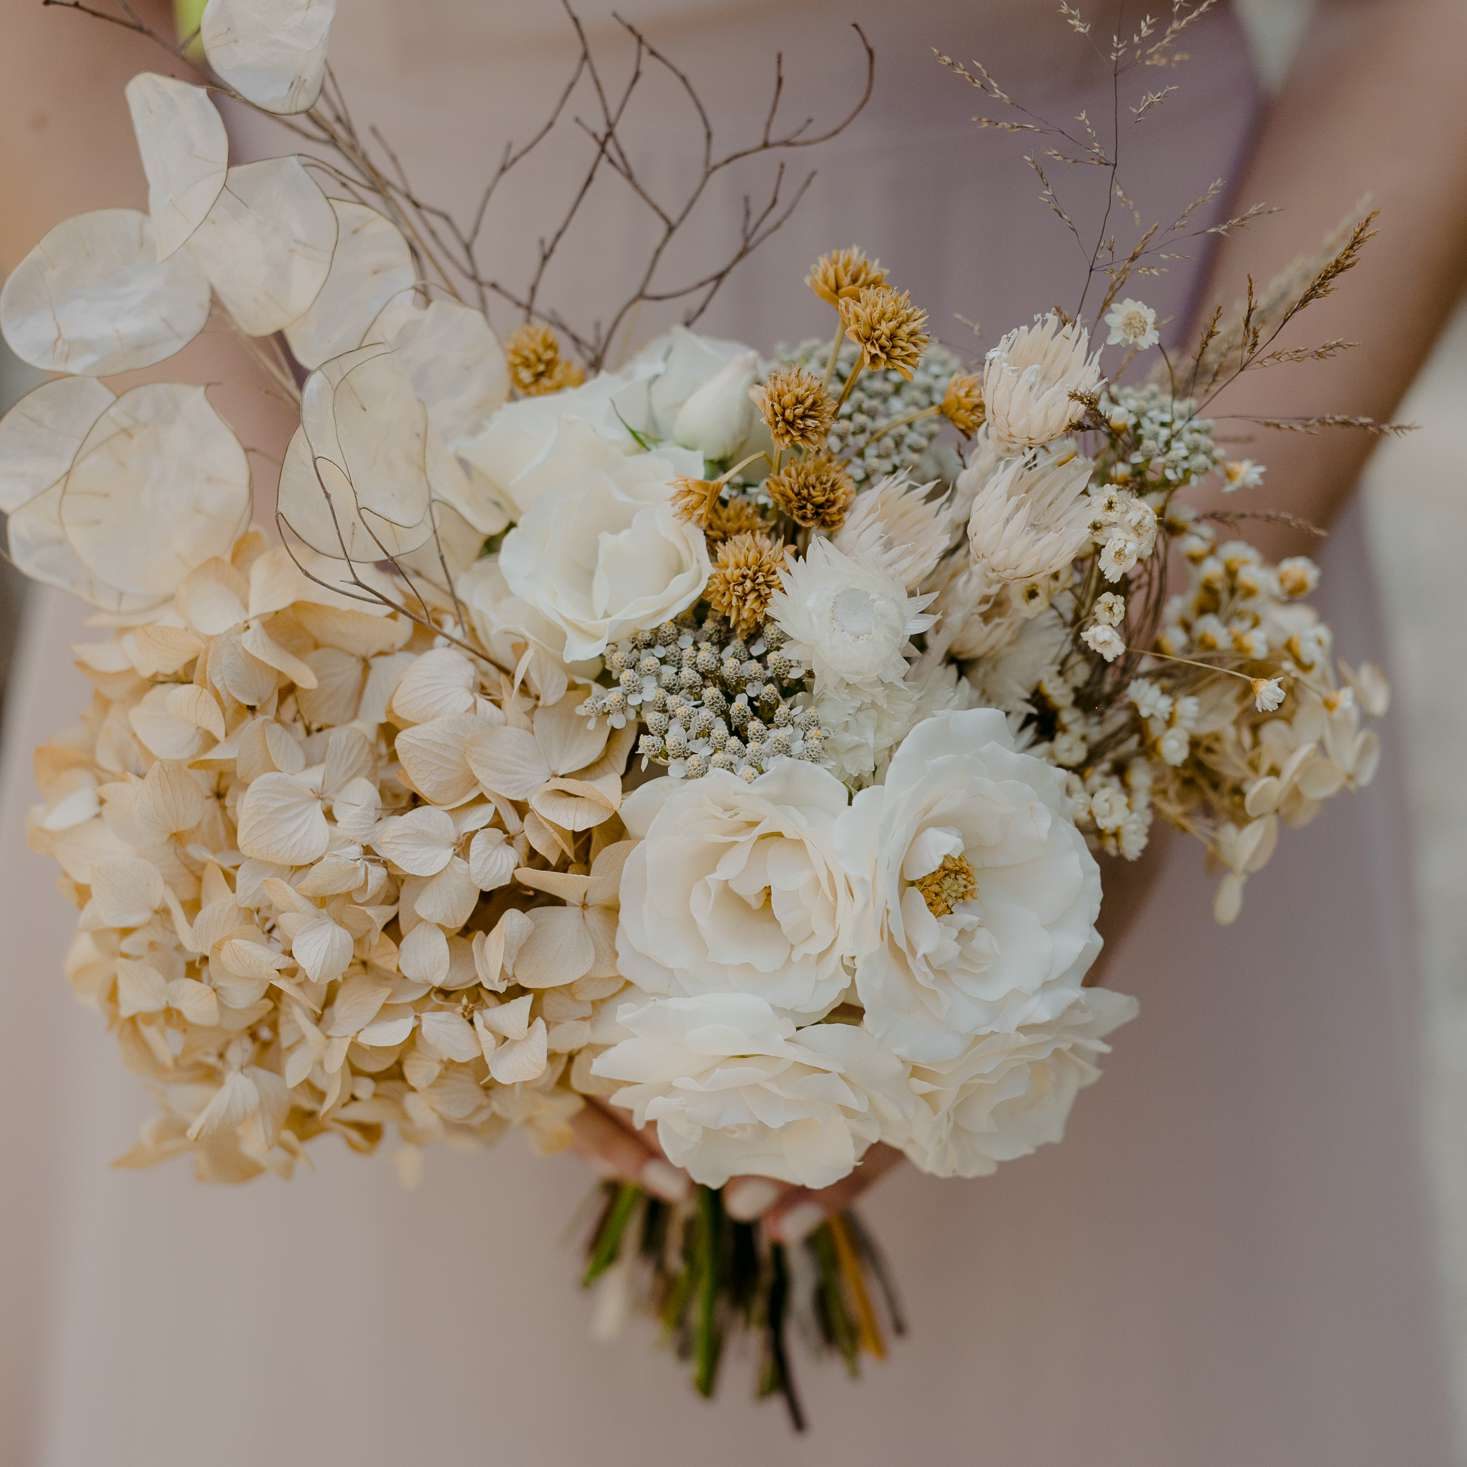 Arrangements of hydrangeas, roses, and dried flowers